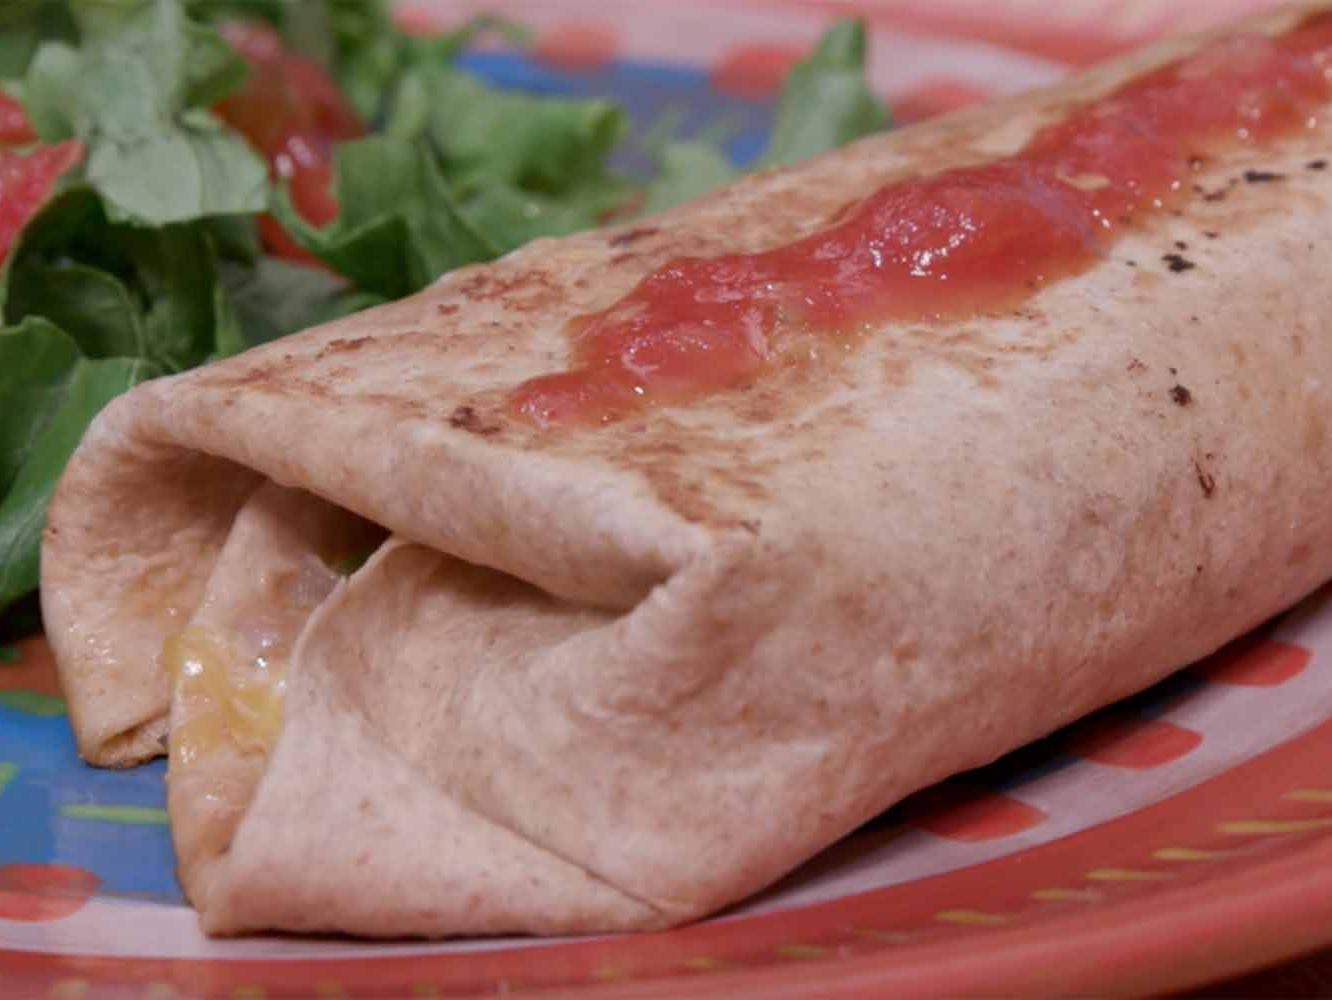 A grilled burrito topped with salsa and a green salad with tomato served on a multicolored plate.